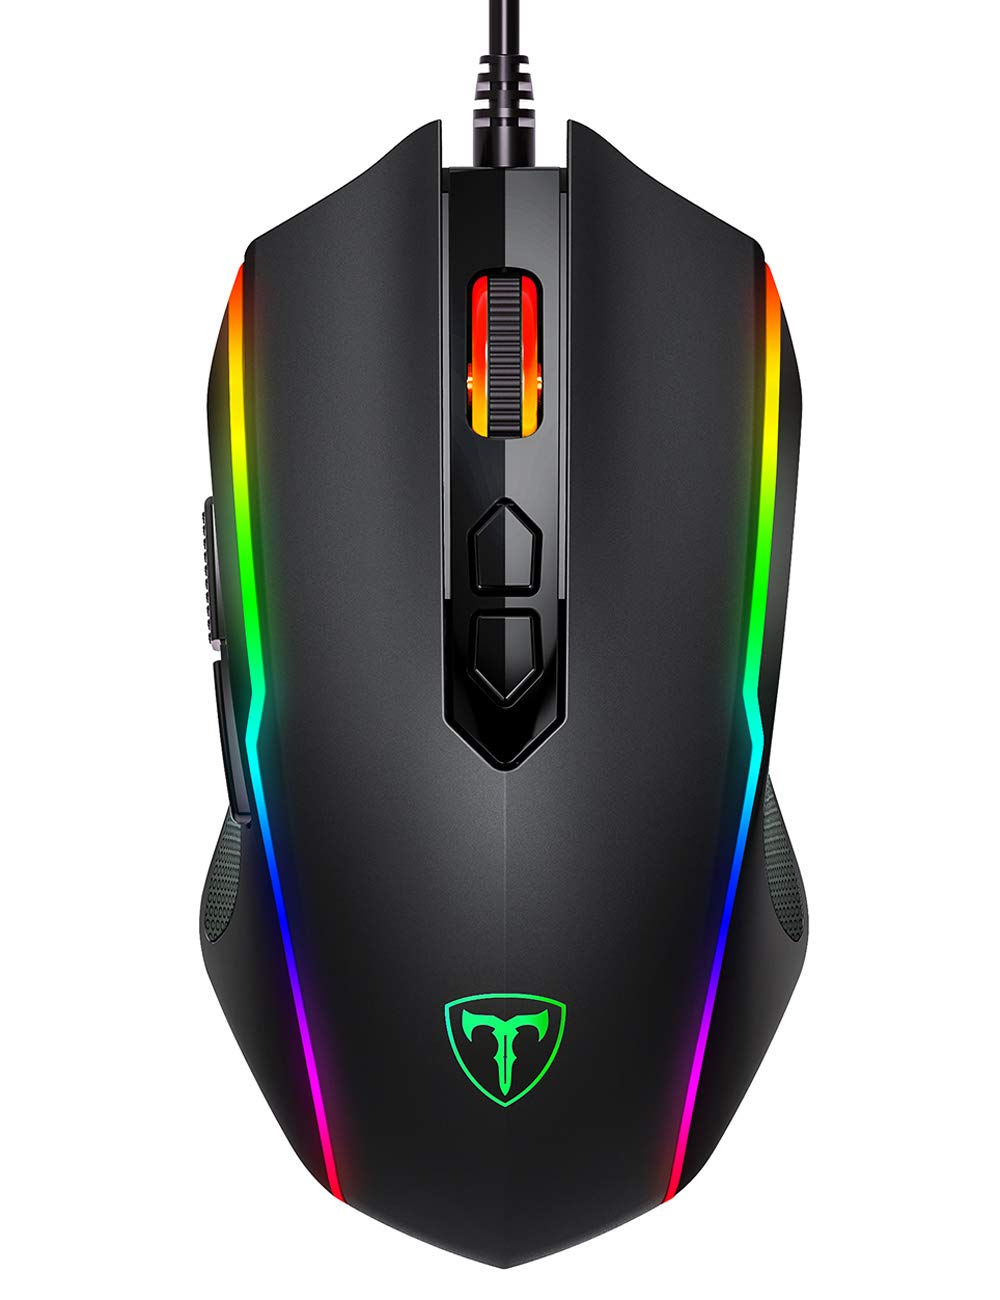 PICTEK Gaming Mouse Wired, 8 Programmable Buttons, Chroma RGB Backlit, 7200 DPI Adjustable, Comfortable Grip Ergonomic Optical PC Computer Gaming Mice with Fire Button, Black (Upgraded Version) by PICTEK (Image #8)